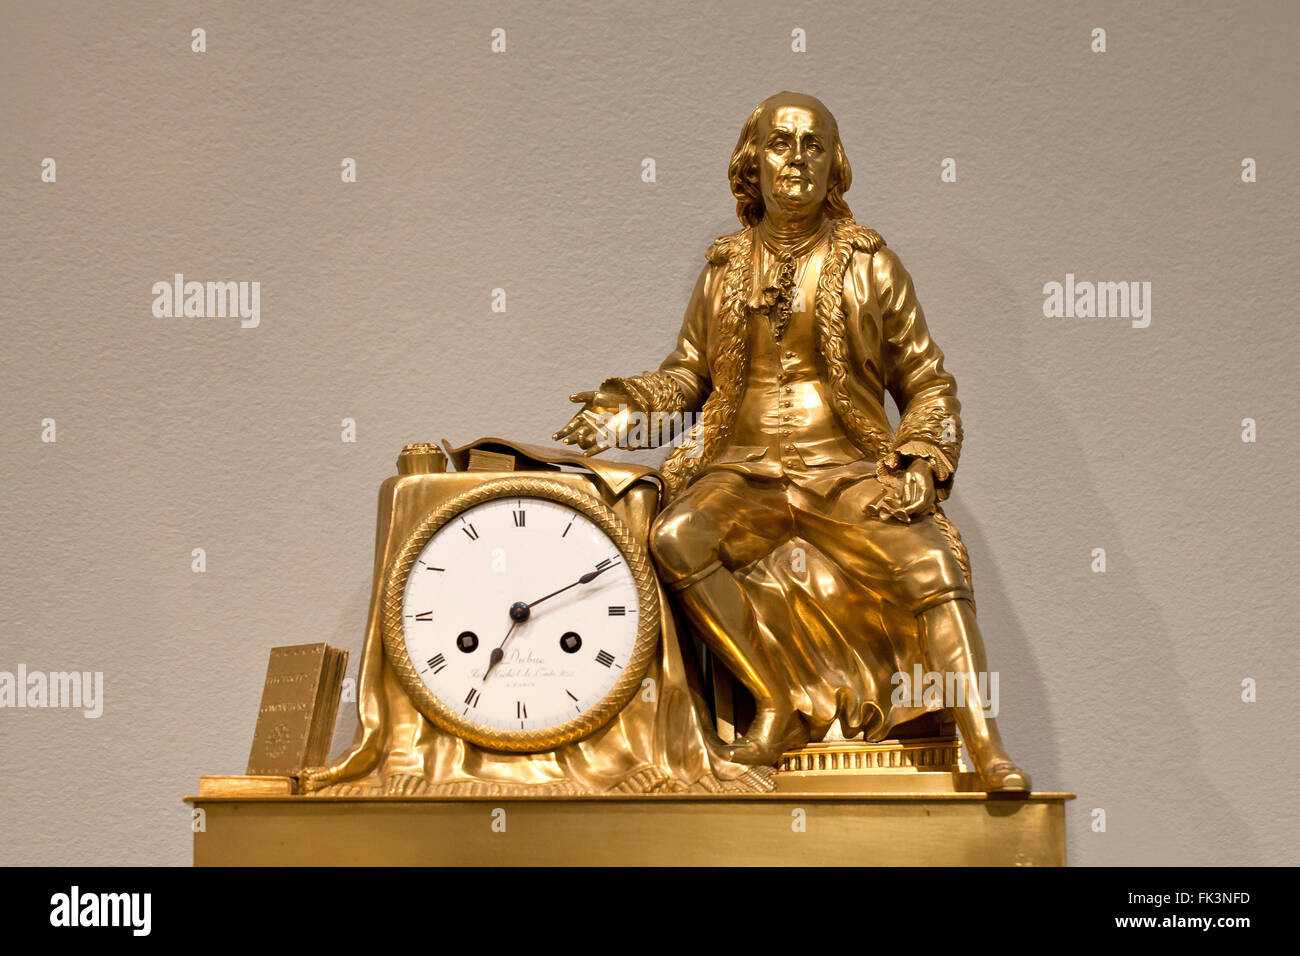 Gilded brass antique mantel clock, circa 1815 - USA - Stock Image